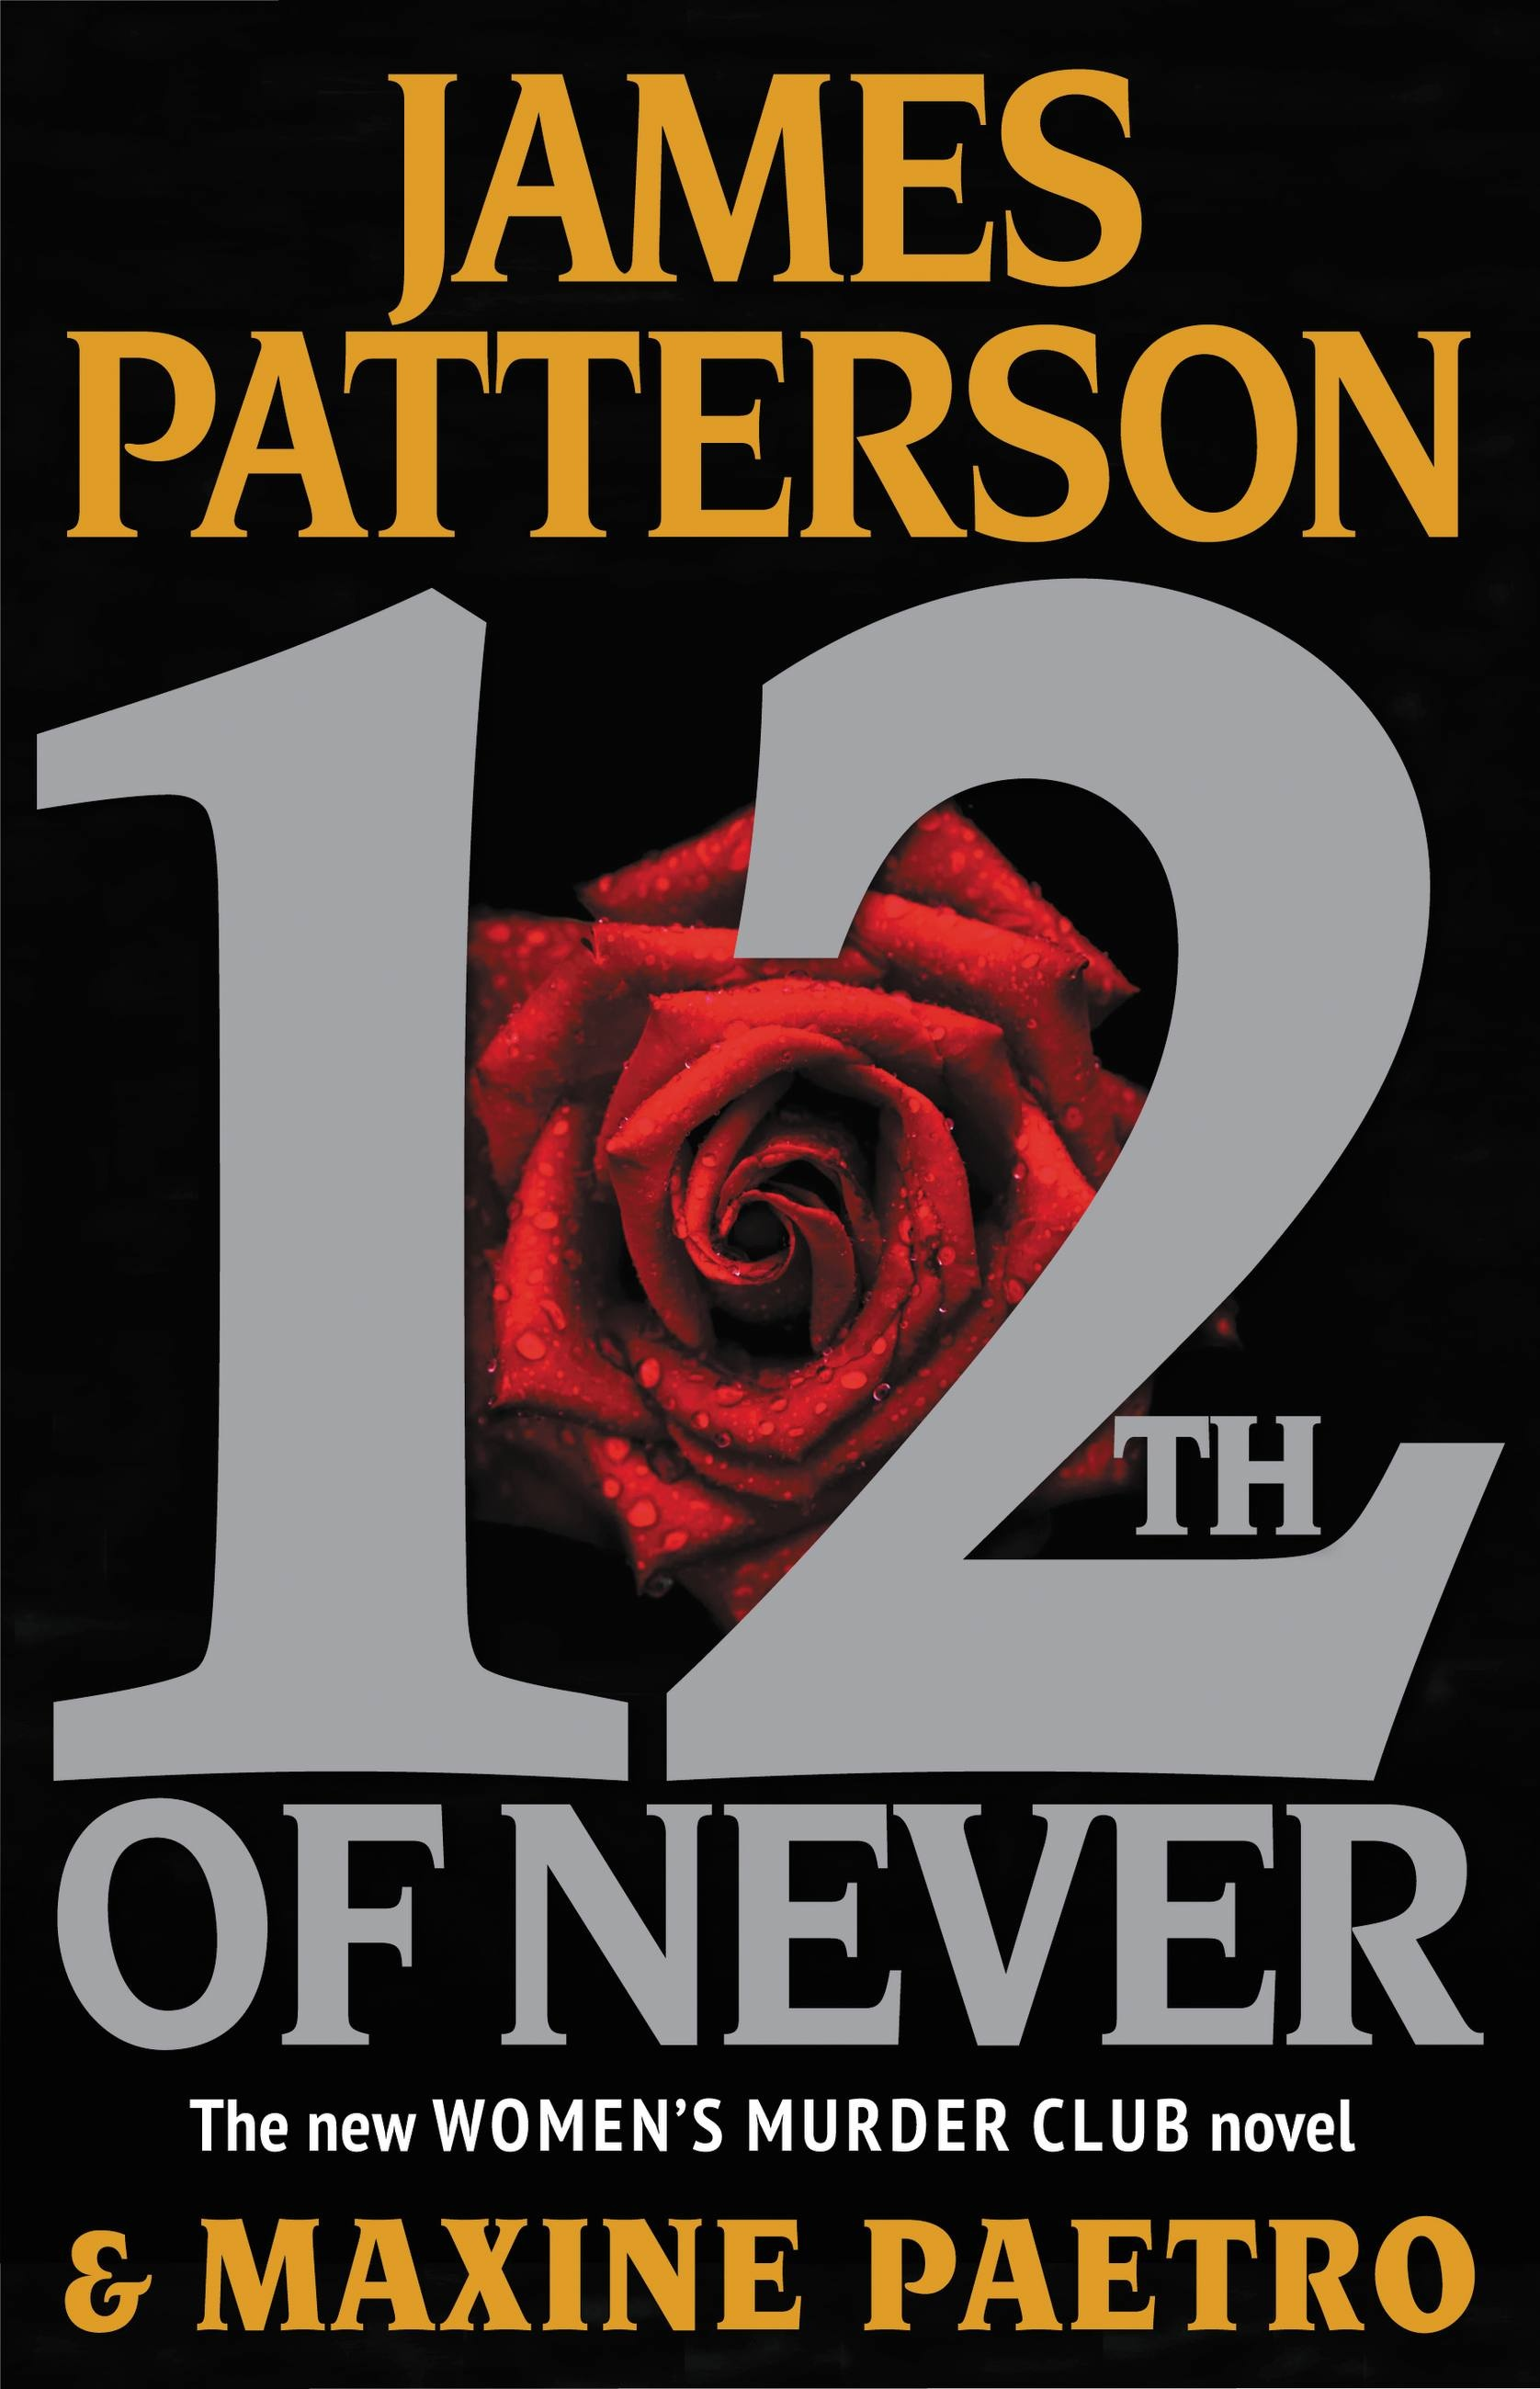 12th of Never by James Patterson | Hachette Book Group